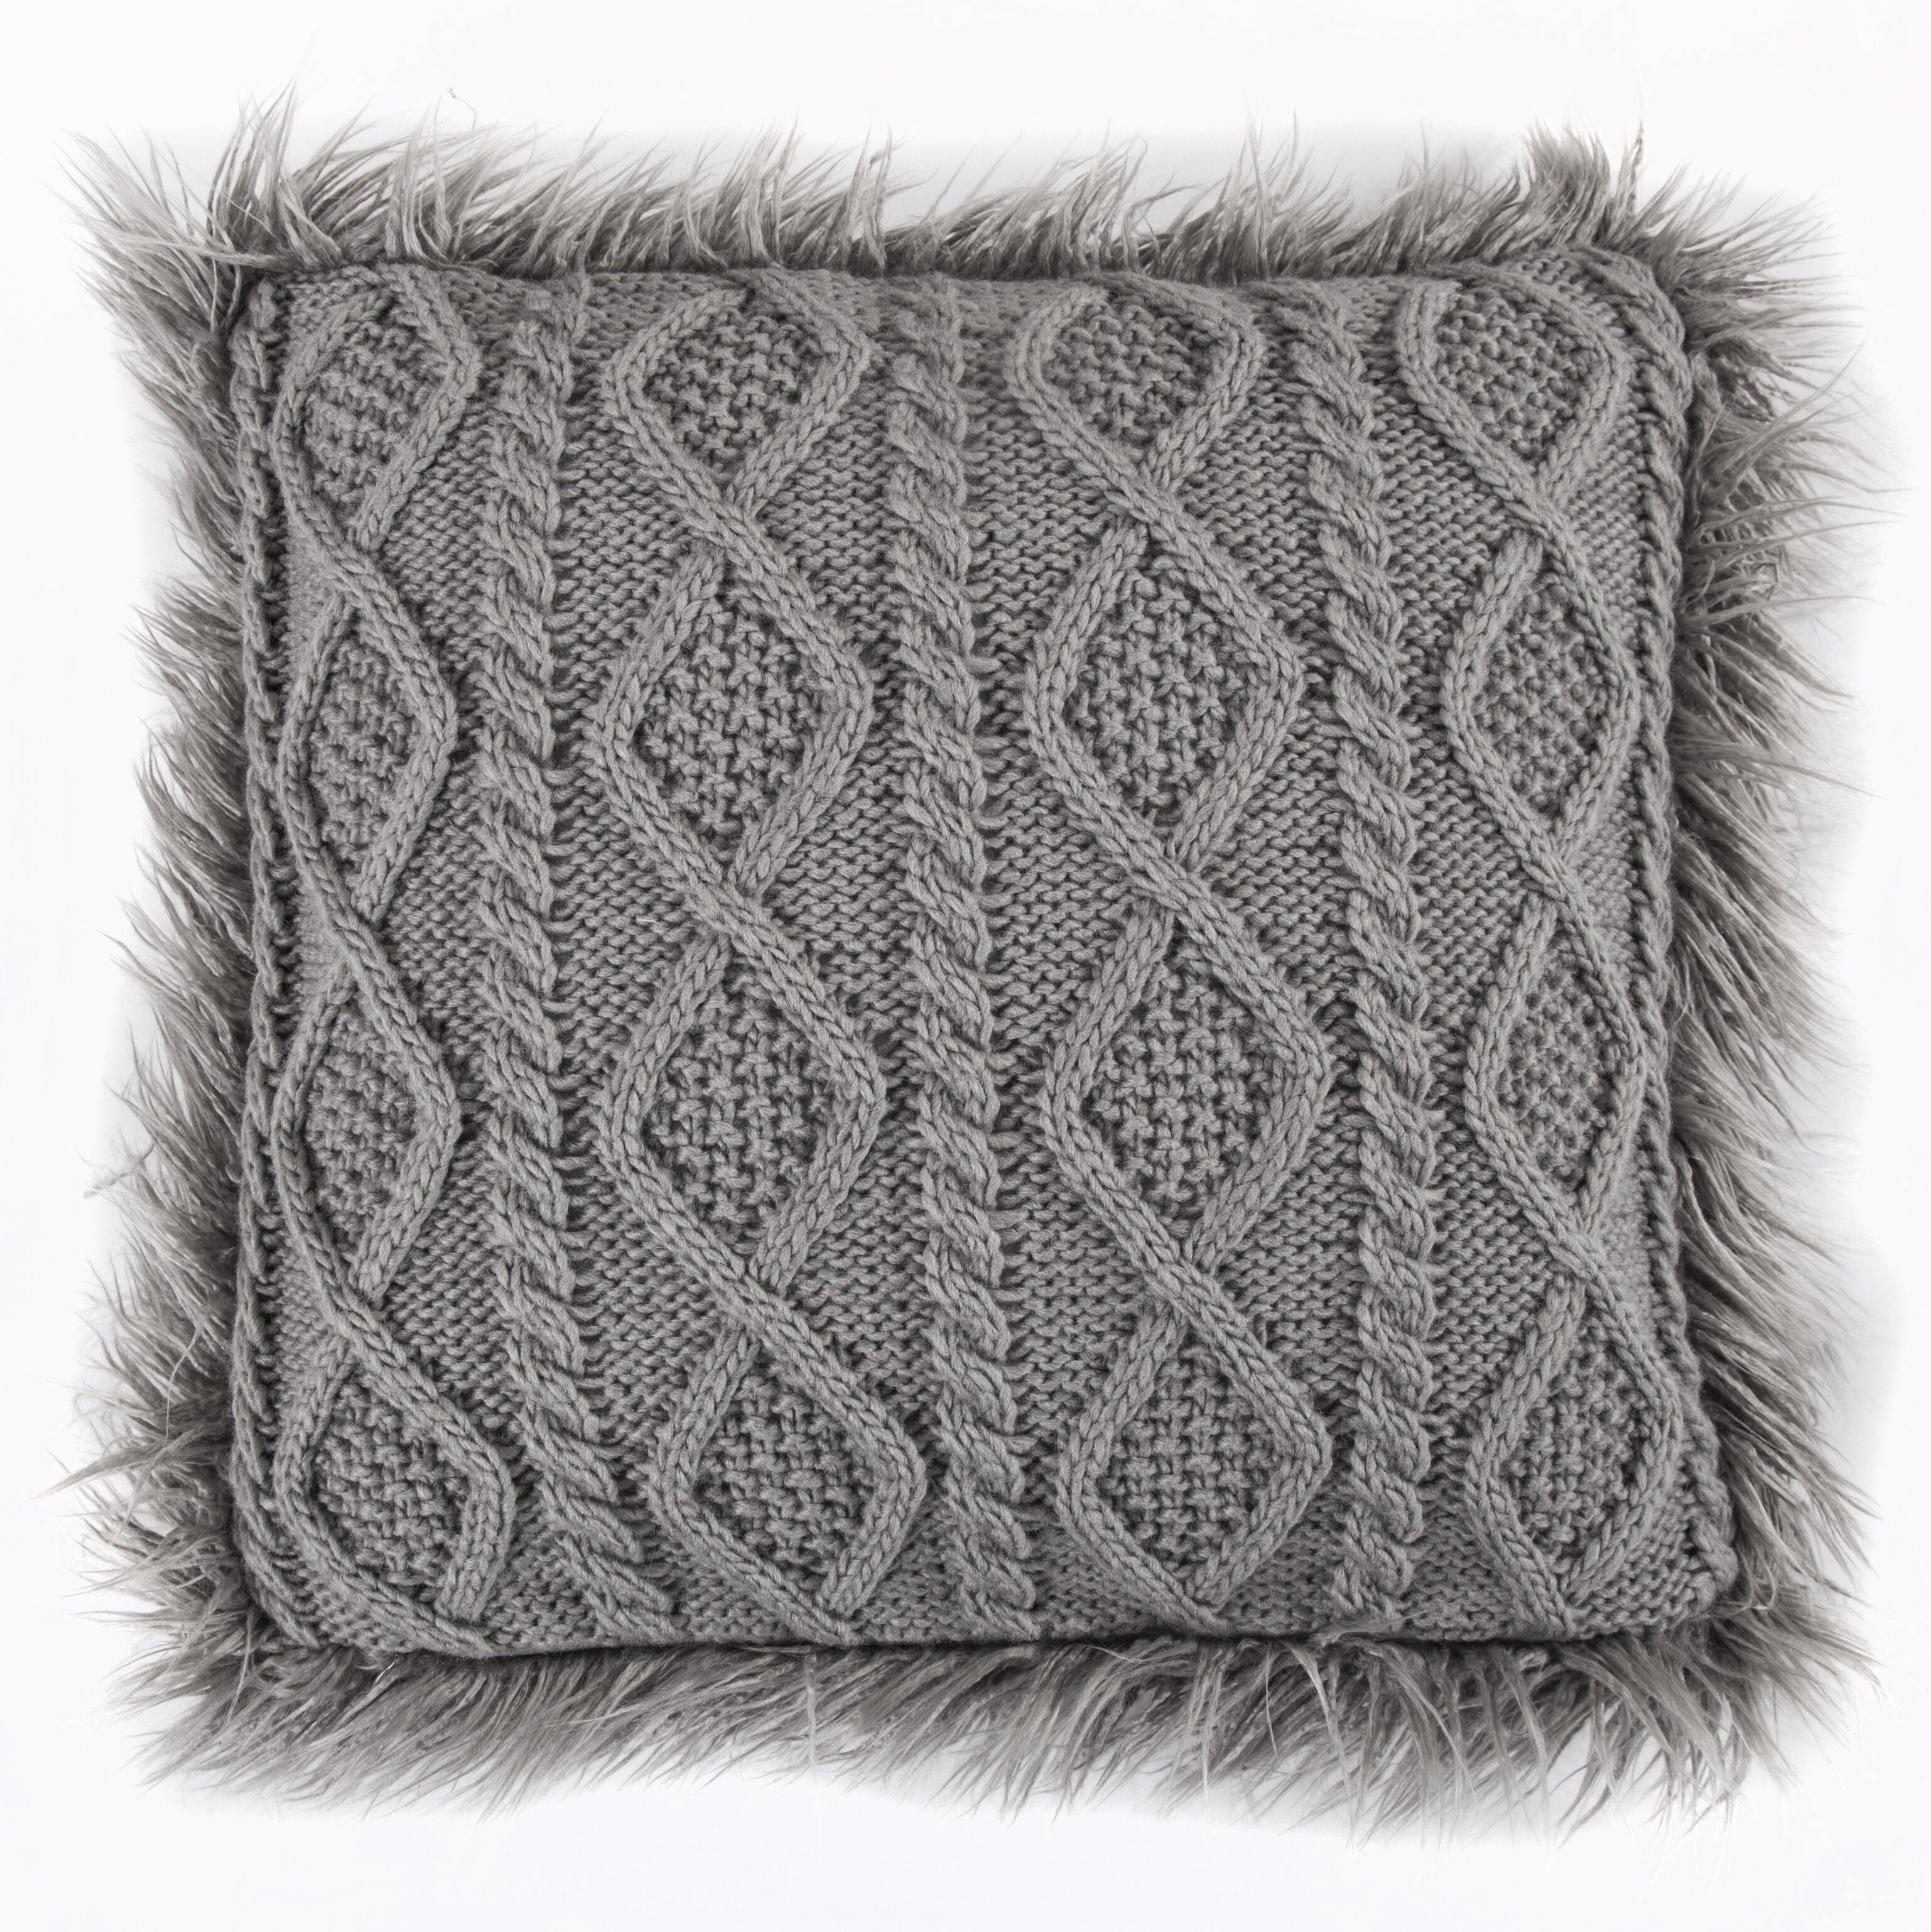 Knitting Pattern For Cushion Cover With Cables Nordic Cable Knit Throw Pillow